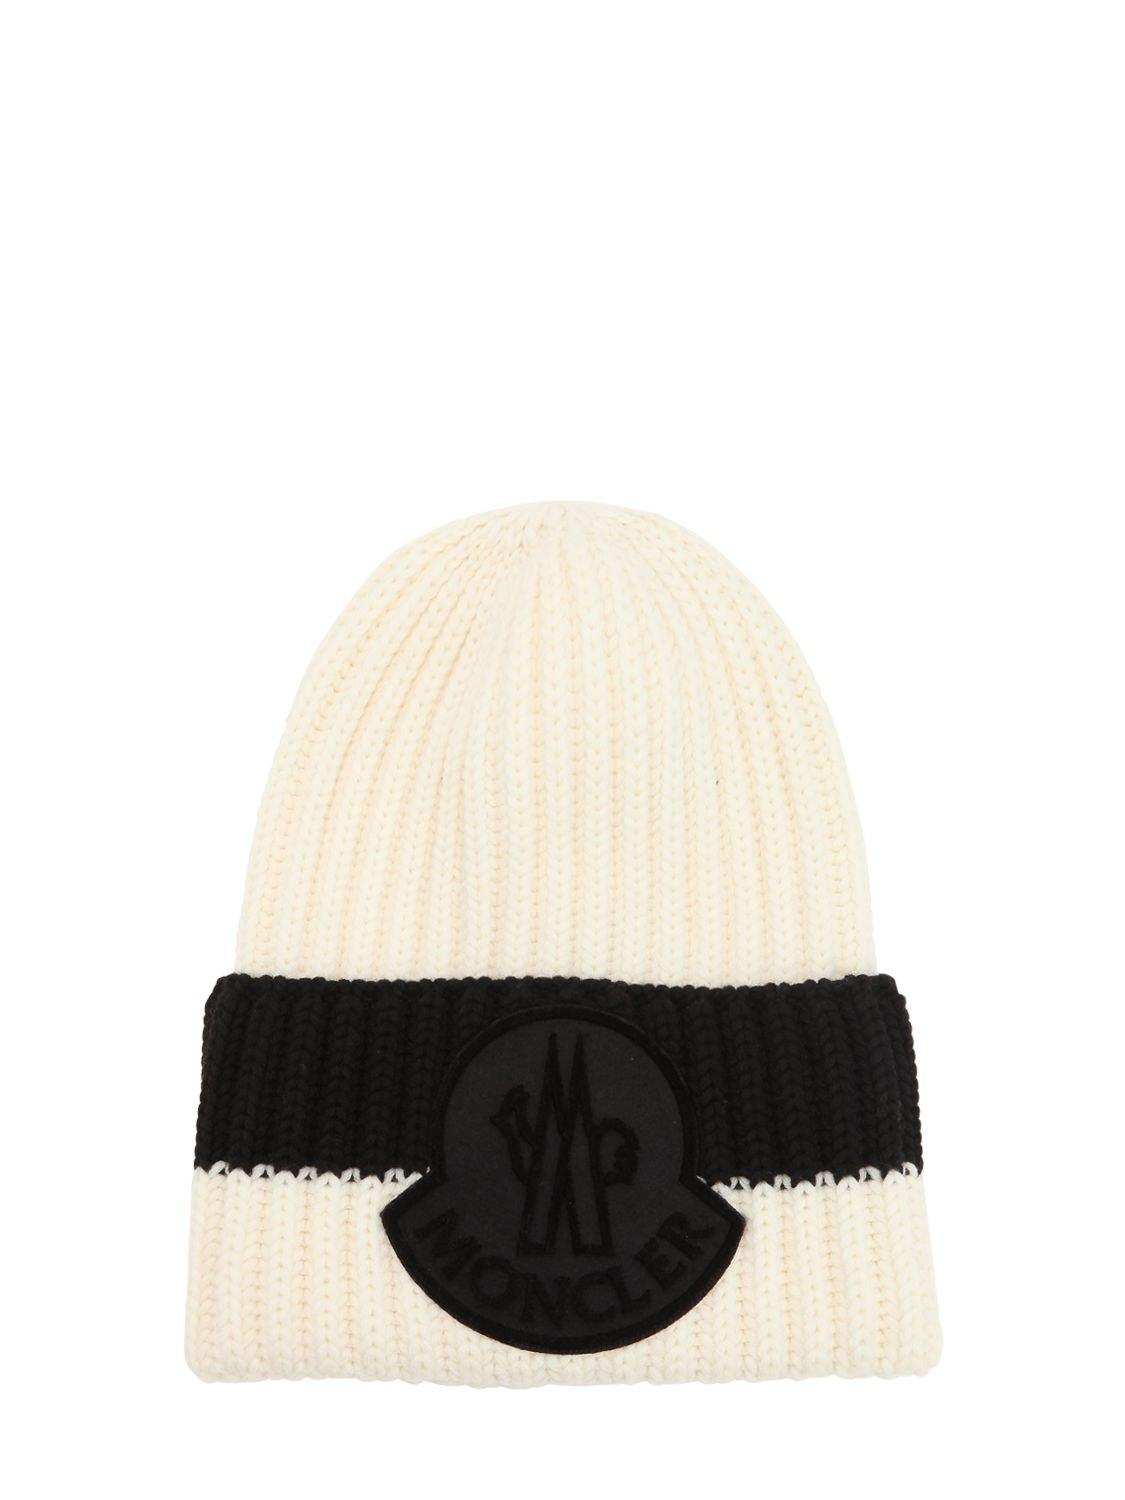 3a853e5af92 Lyst - Moncler Logo Wool Rib Knit Beanie Hat in Black for Men